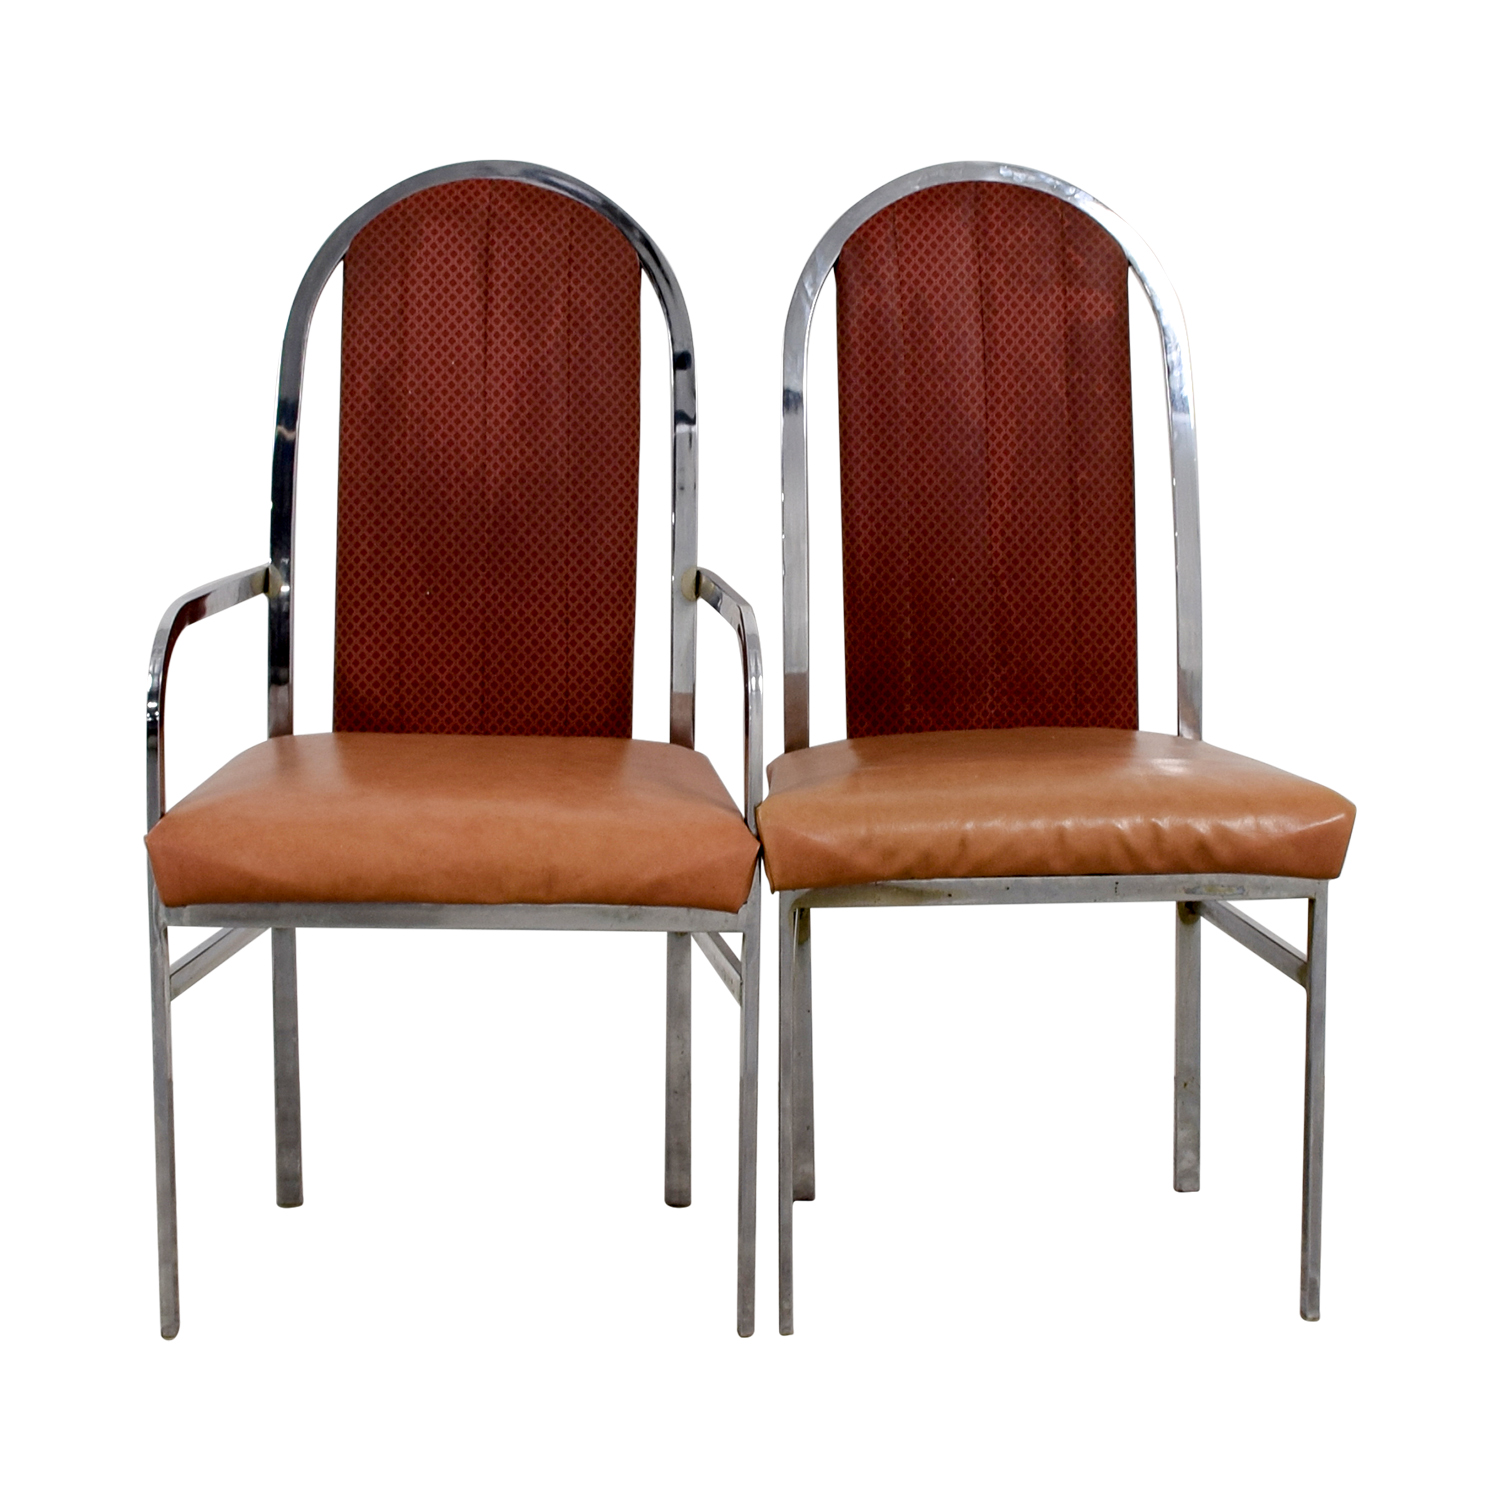 Peach Leather and Chrome Dining Chairs Chairs